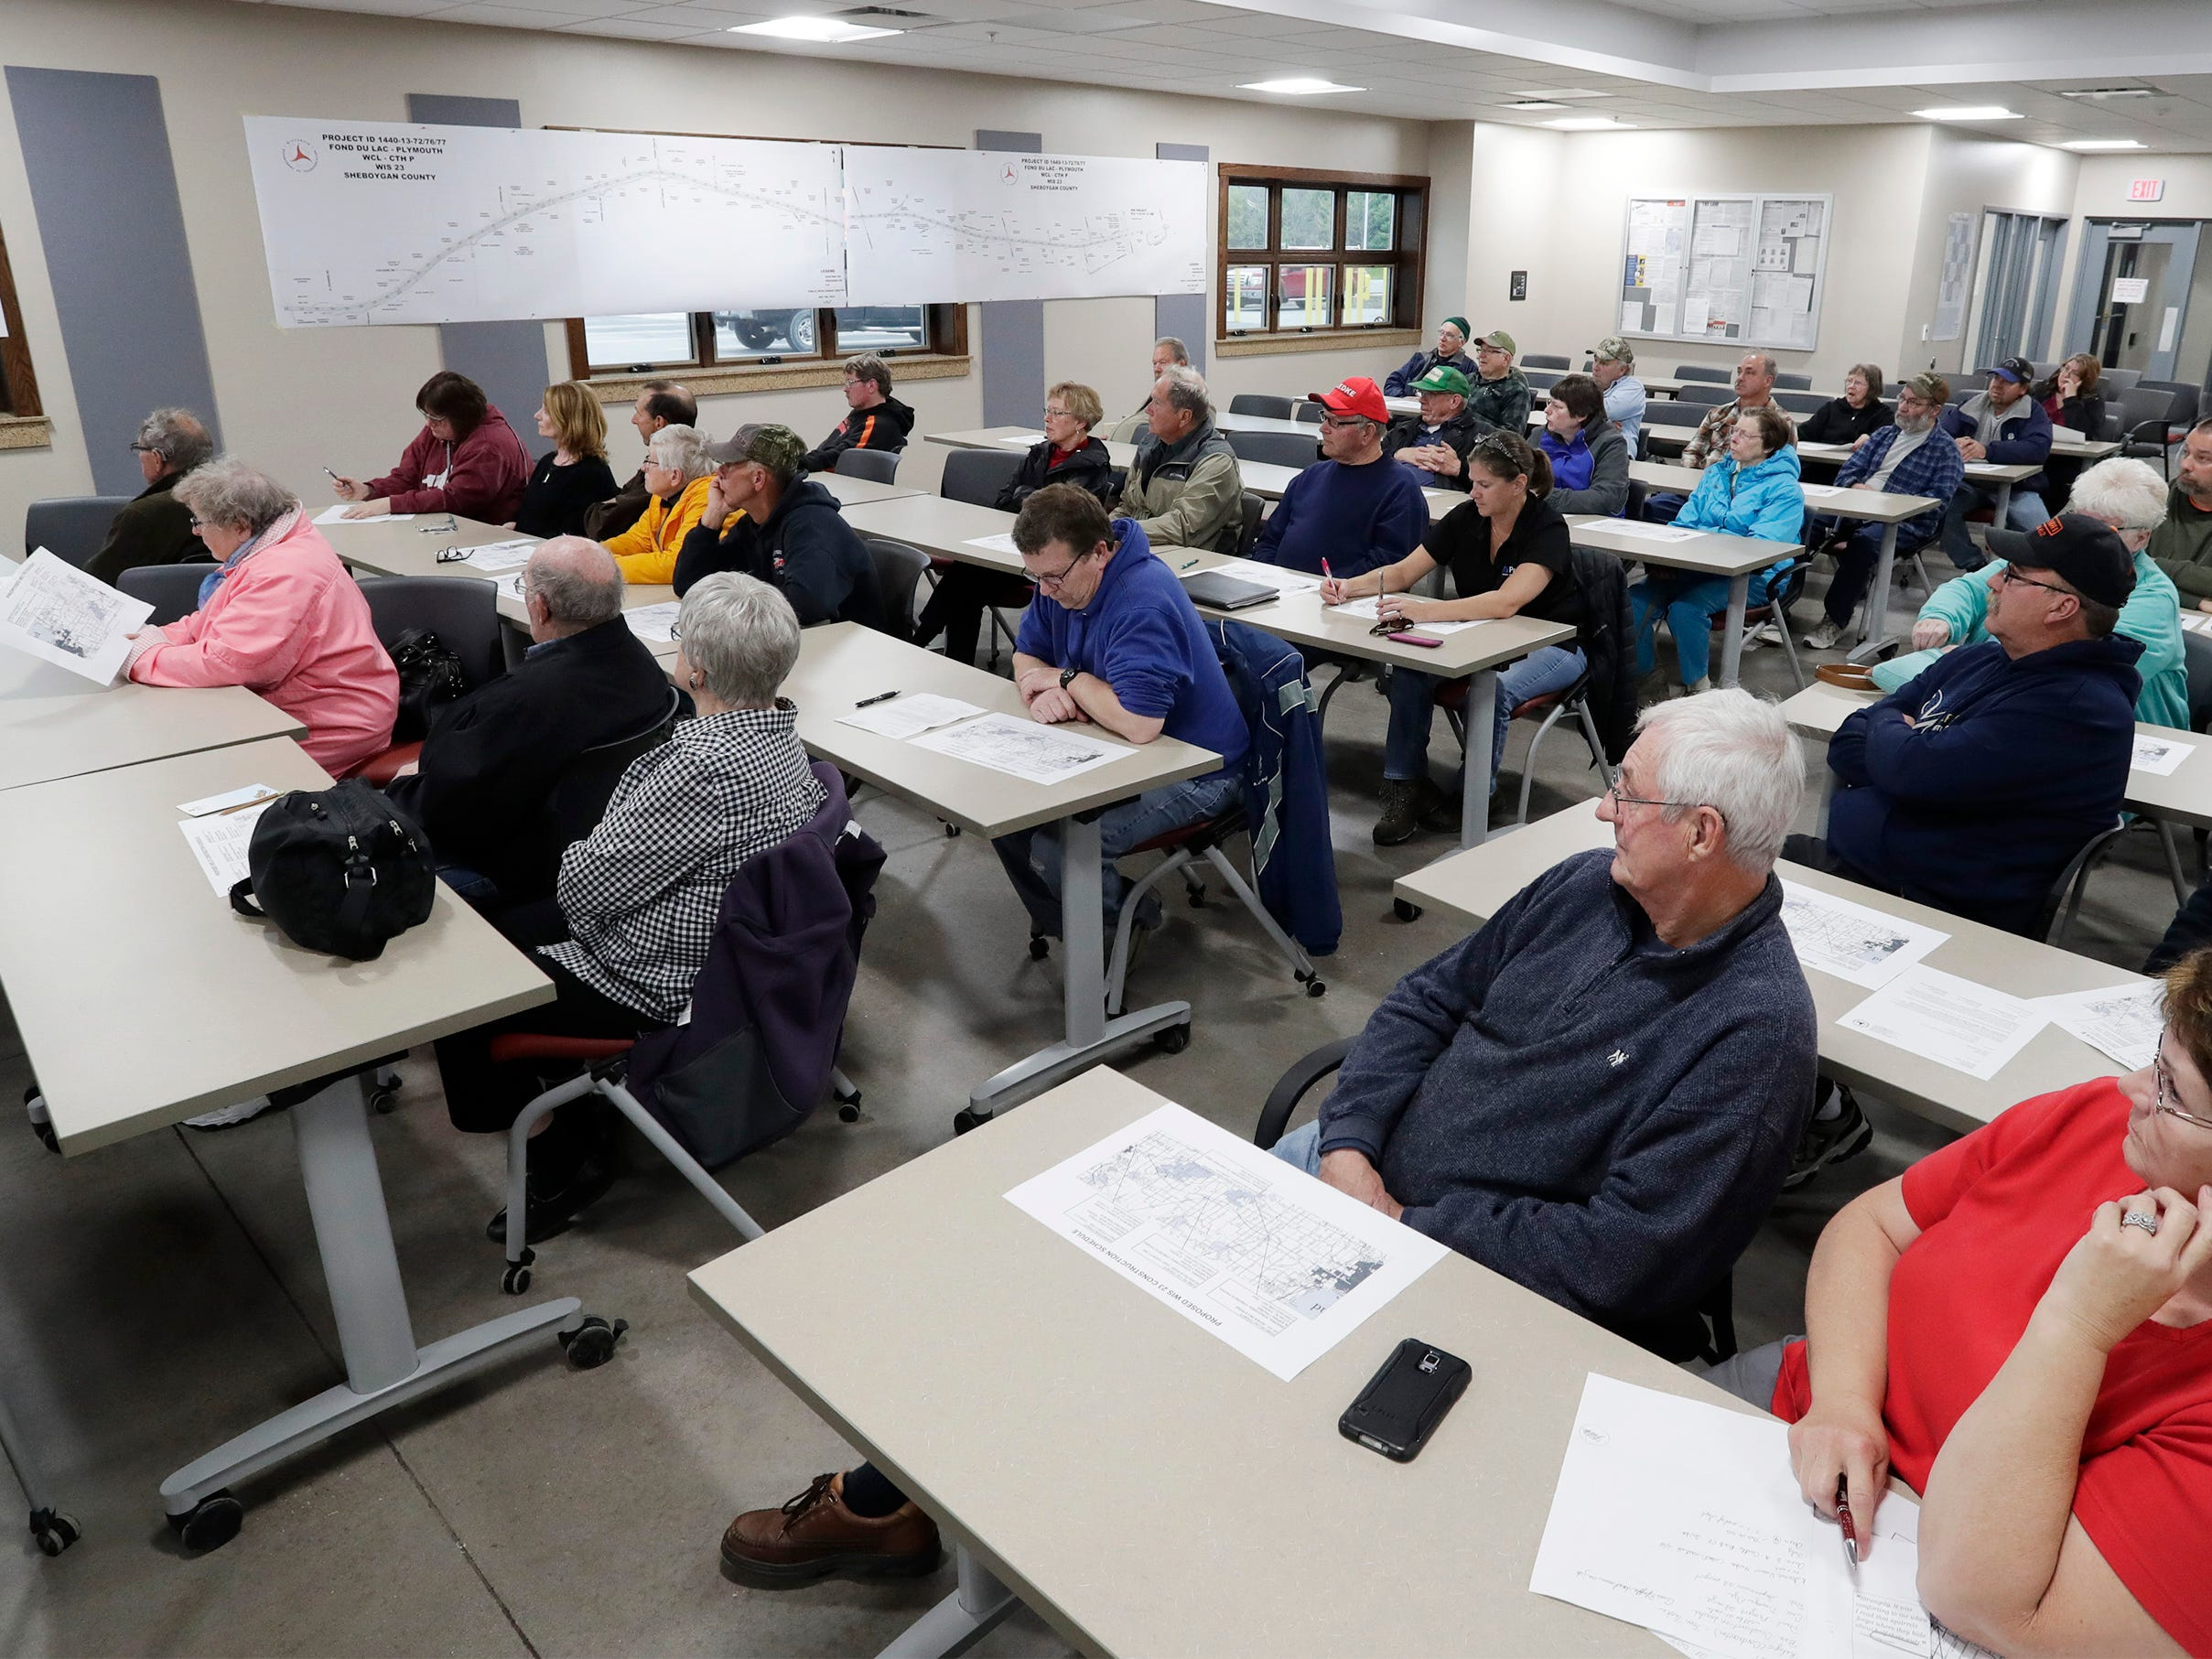 People fill a meeting room at the Sheboygan County Transportation Facility, Thursday, May 9, 2019, in Plymouth, Wis.  DOT officials displayed the construction plans for the state Highway 23 four-lane construction project.